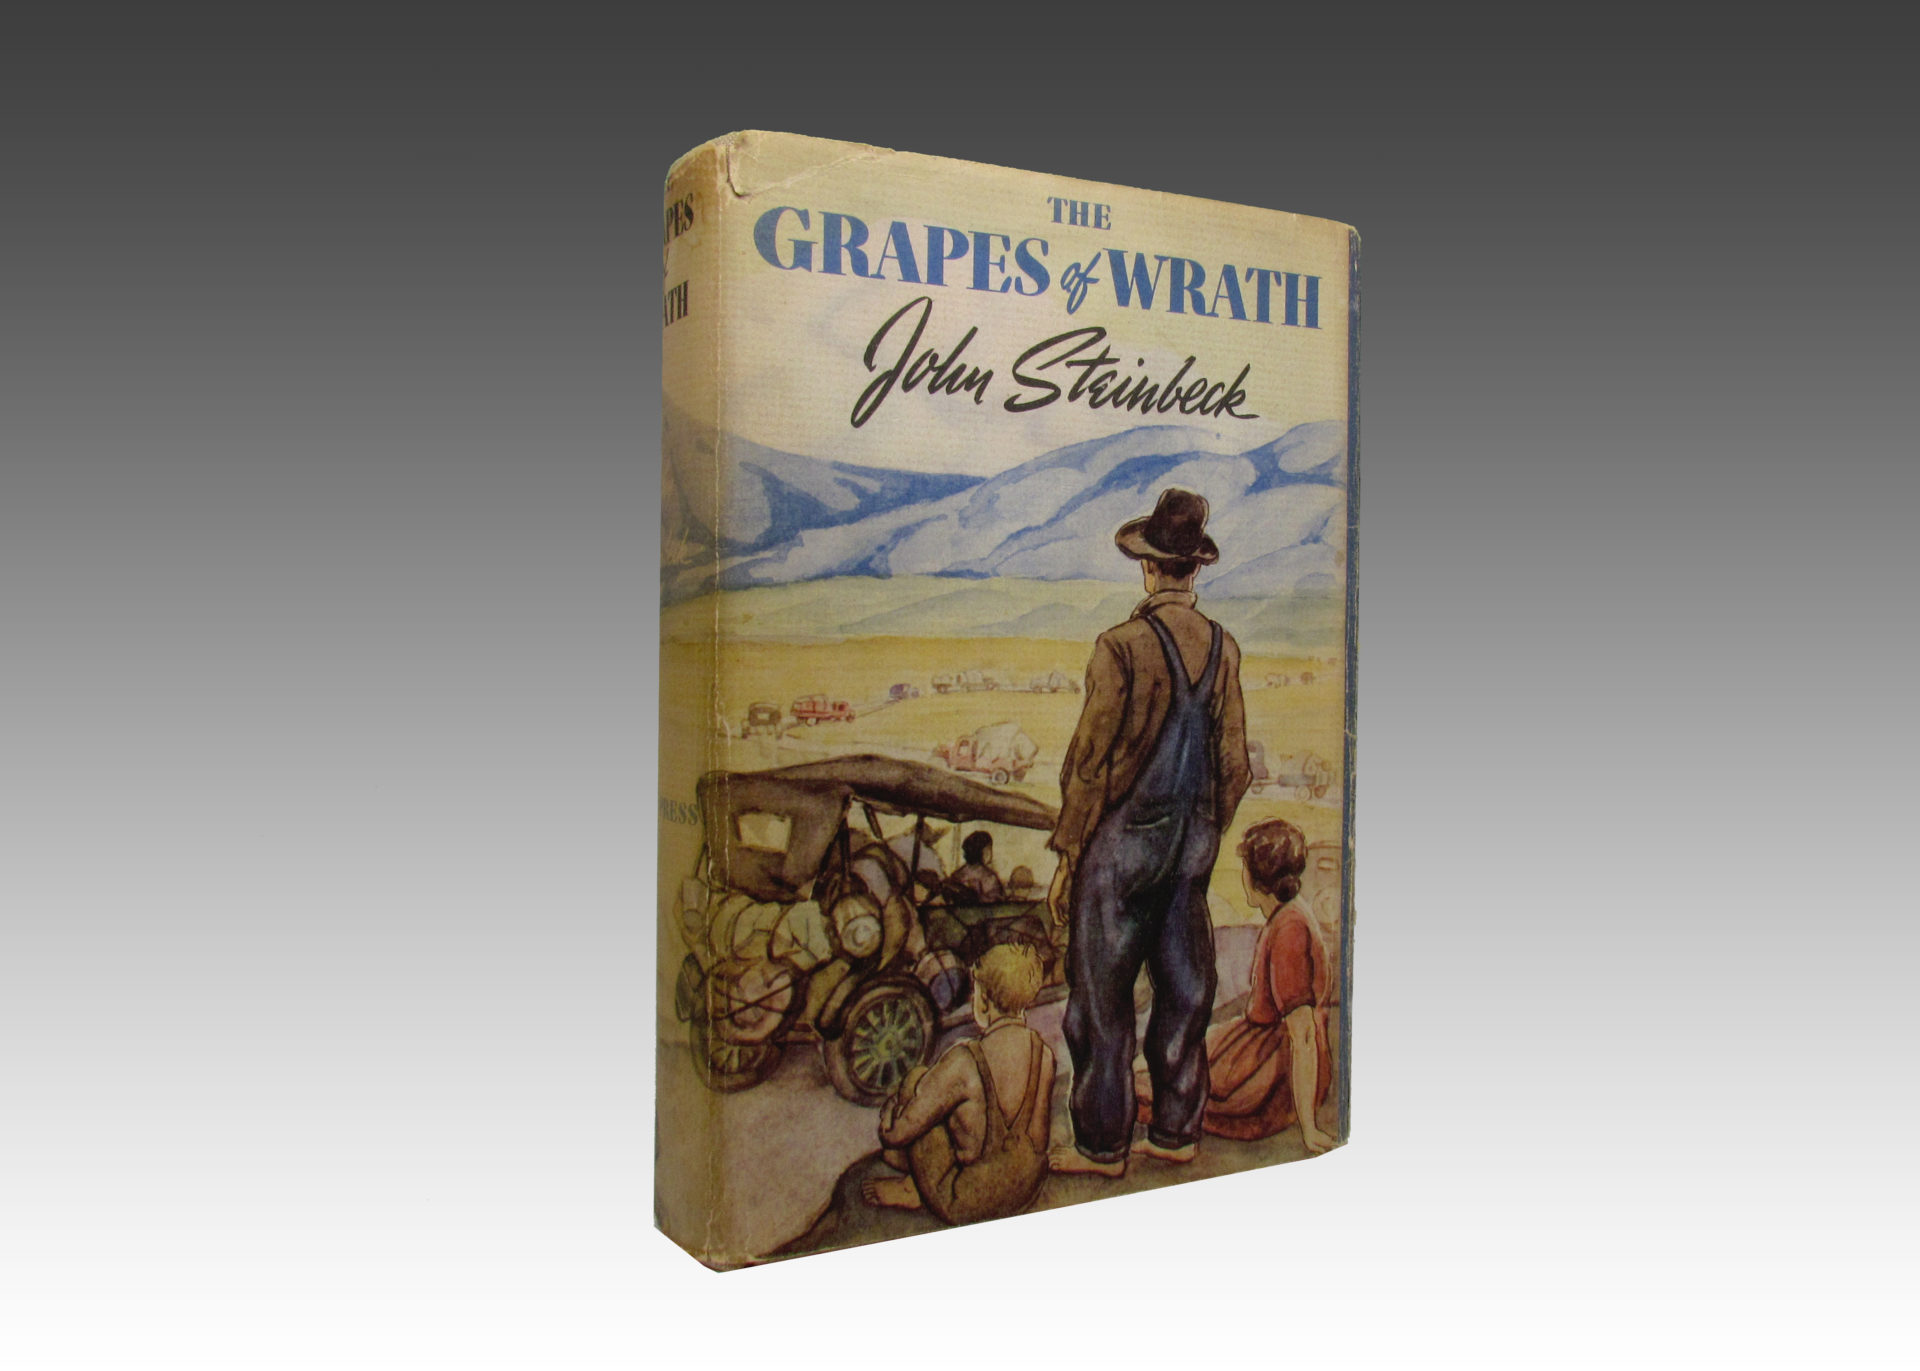 the downfall of a family in the grapes of wrath by john steinbeck This literary analysis of john steinbeck's the grapes of wrath explores how the author attains closure at the end of the novel  steinbeck creates a family with strengths and flaws this mixture ennobles the joads ultimately, it is kindness, the family's greatest strength, which becomes a detrimental weakness  the author's portrayal.